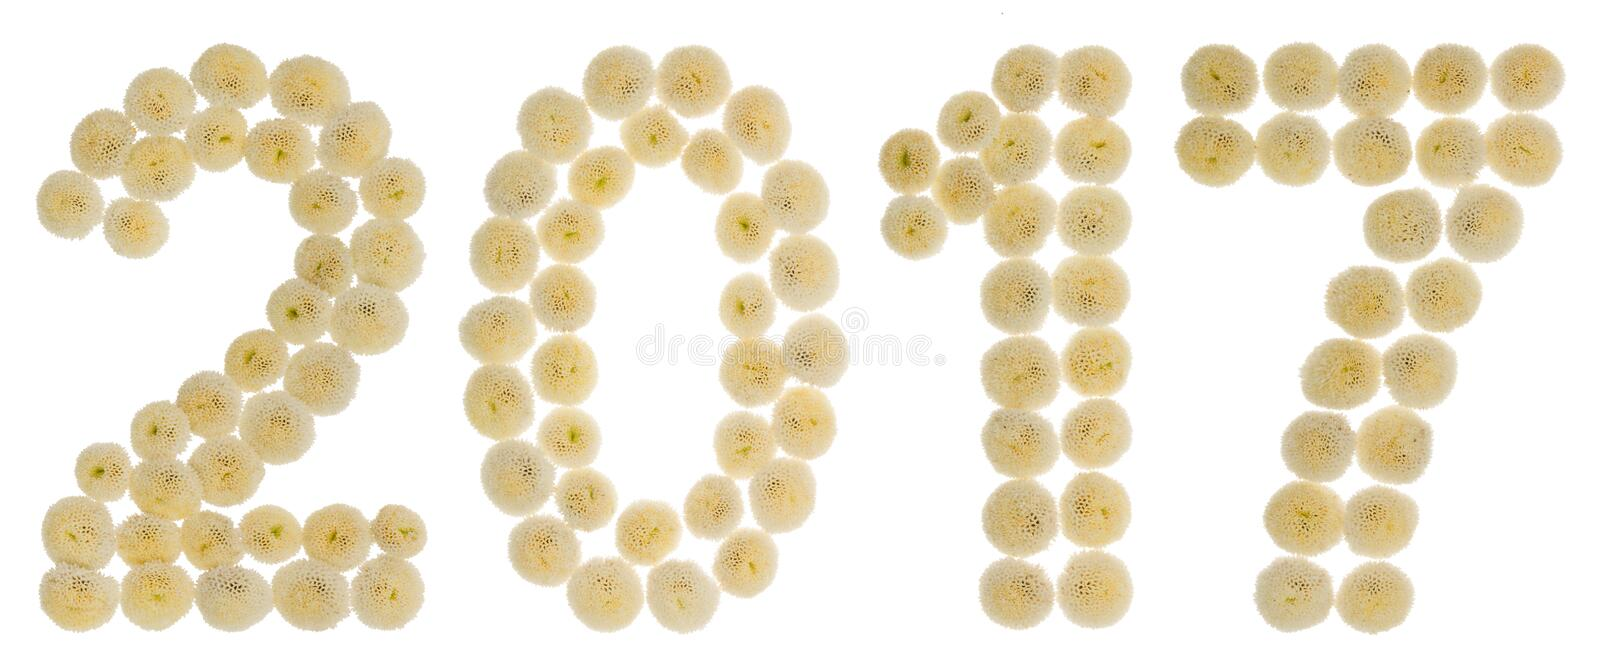 Numeral 2017 das flores de creme do crisântemo, isoladas no wh fotografia de stock royalty free